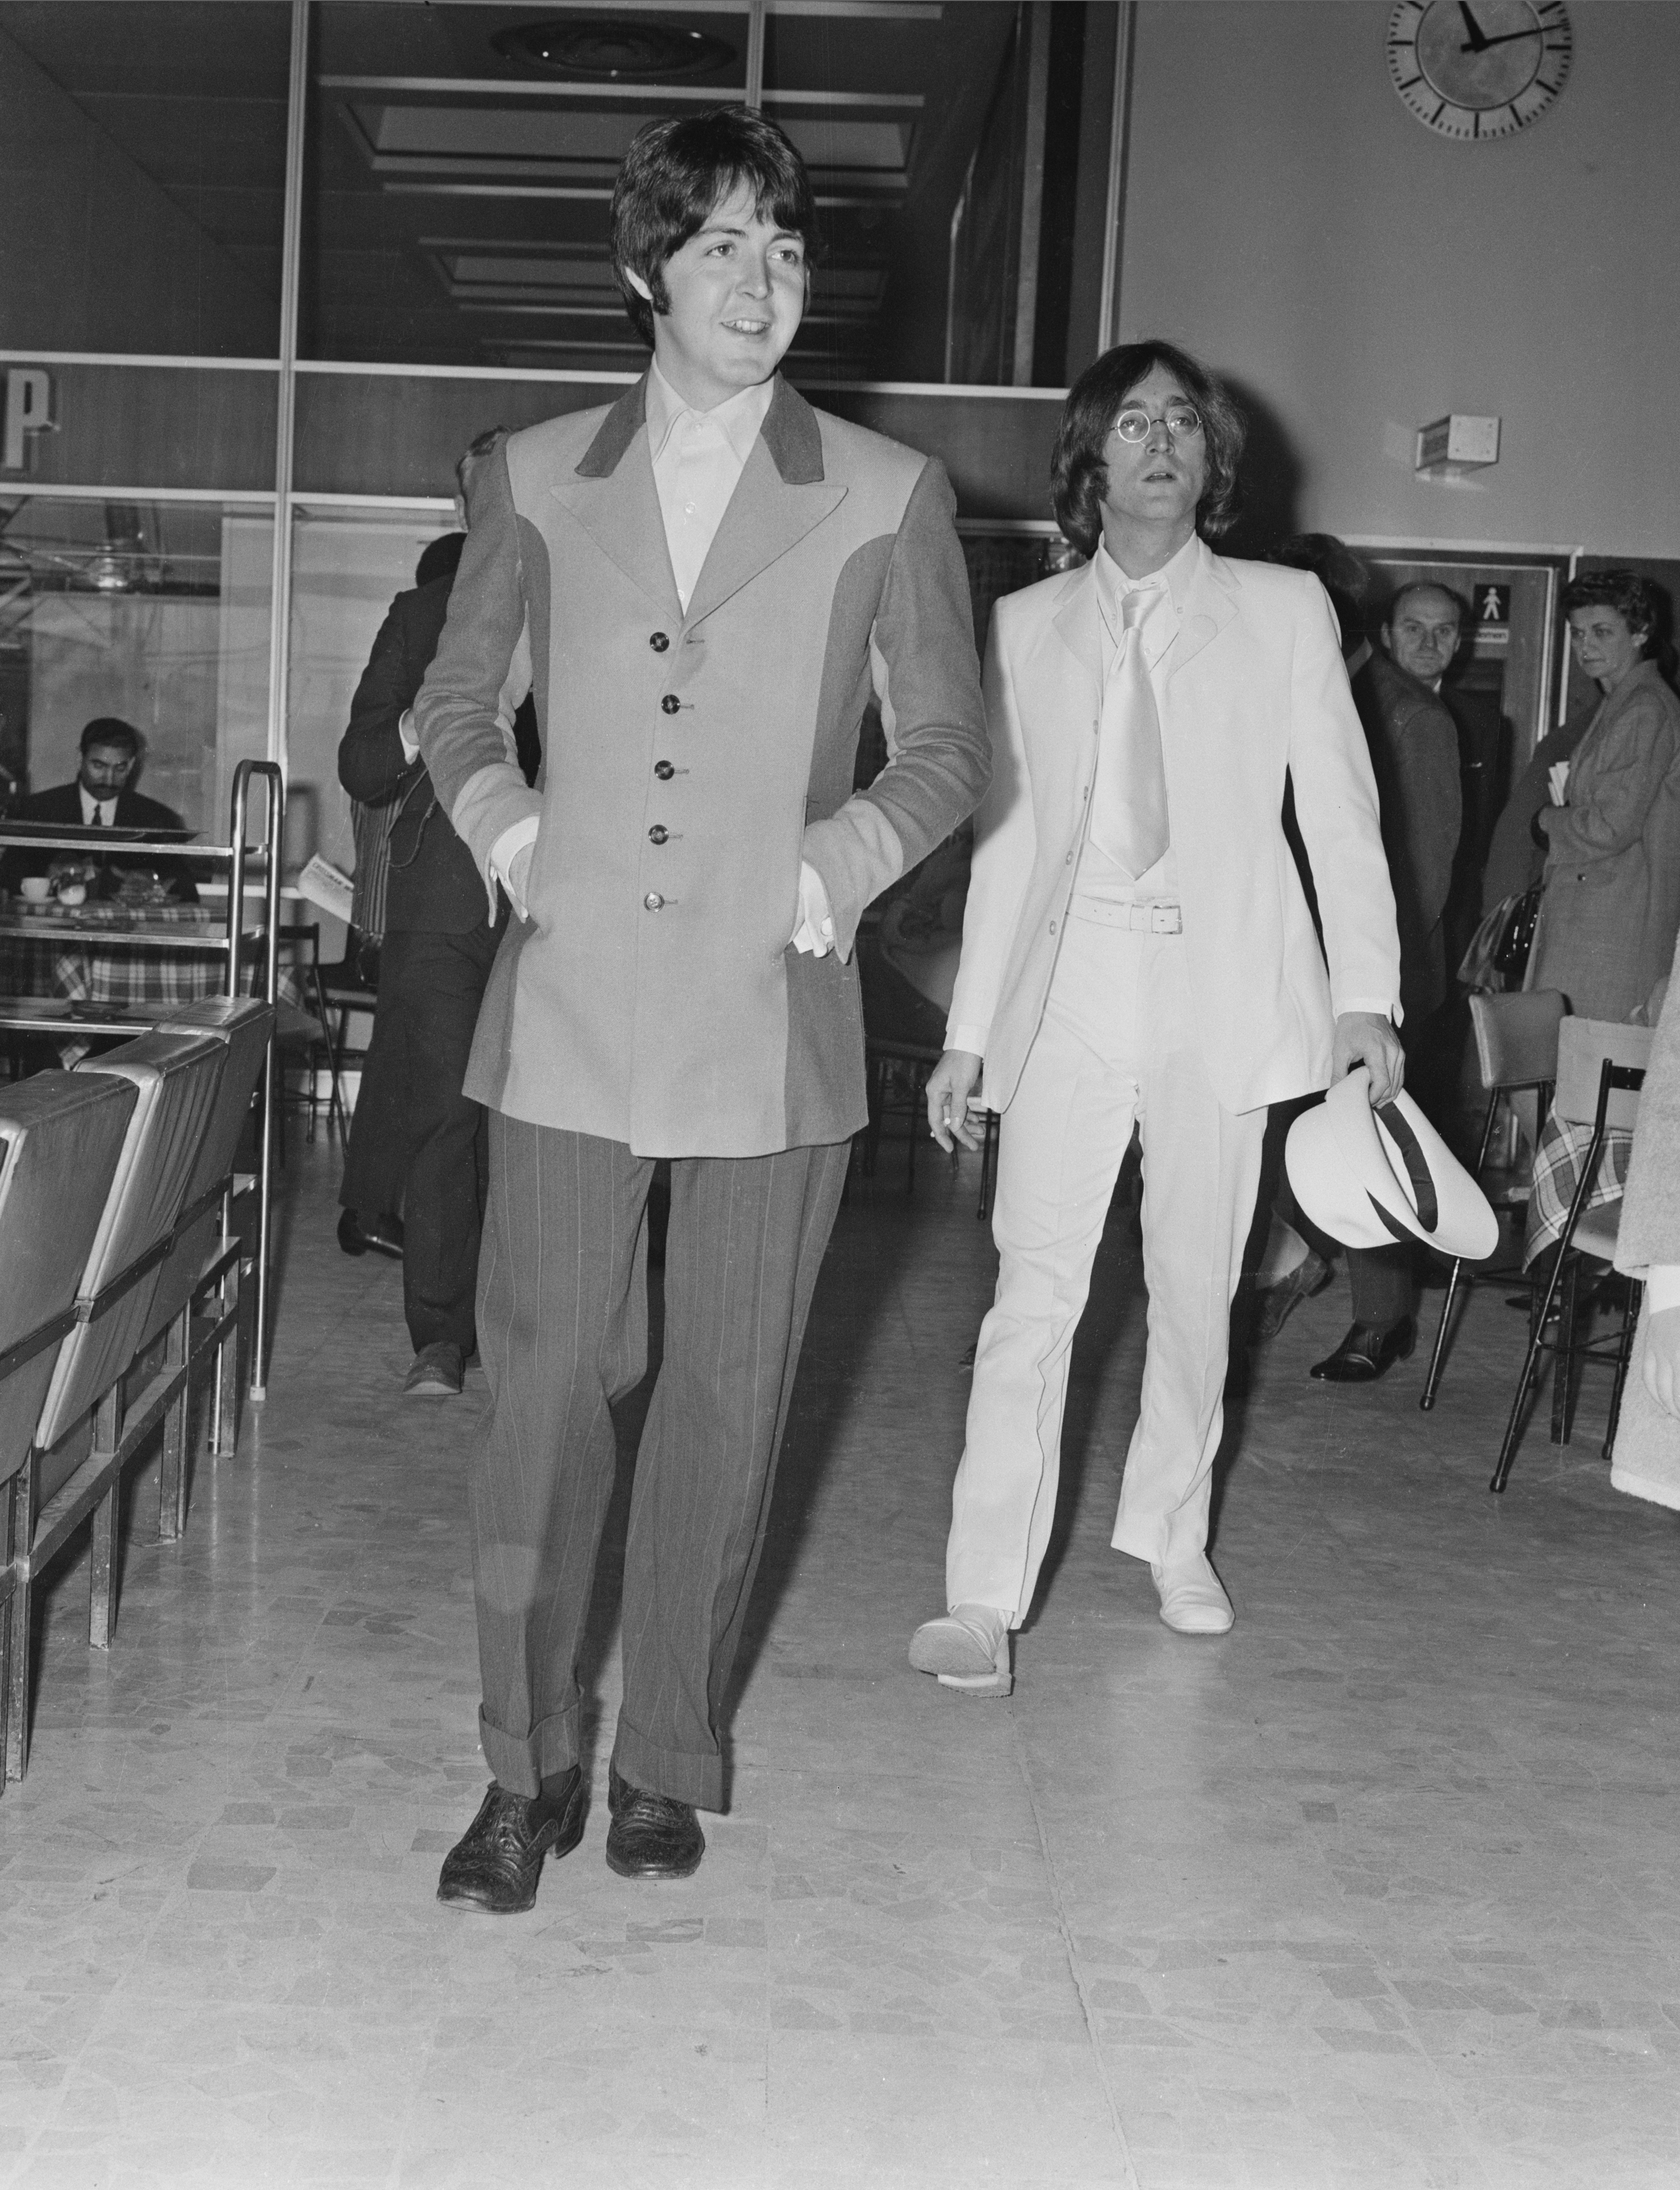 British musicians of the Beatles, Paul McCartney and John Lennon (1940 - 1980) at Heathrow Airport, London, UK, 12th May 1968. (Photo by Dove/Daily Express/Getty Images)